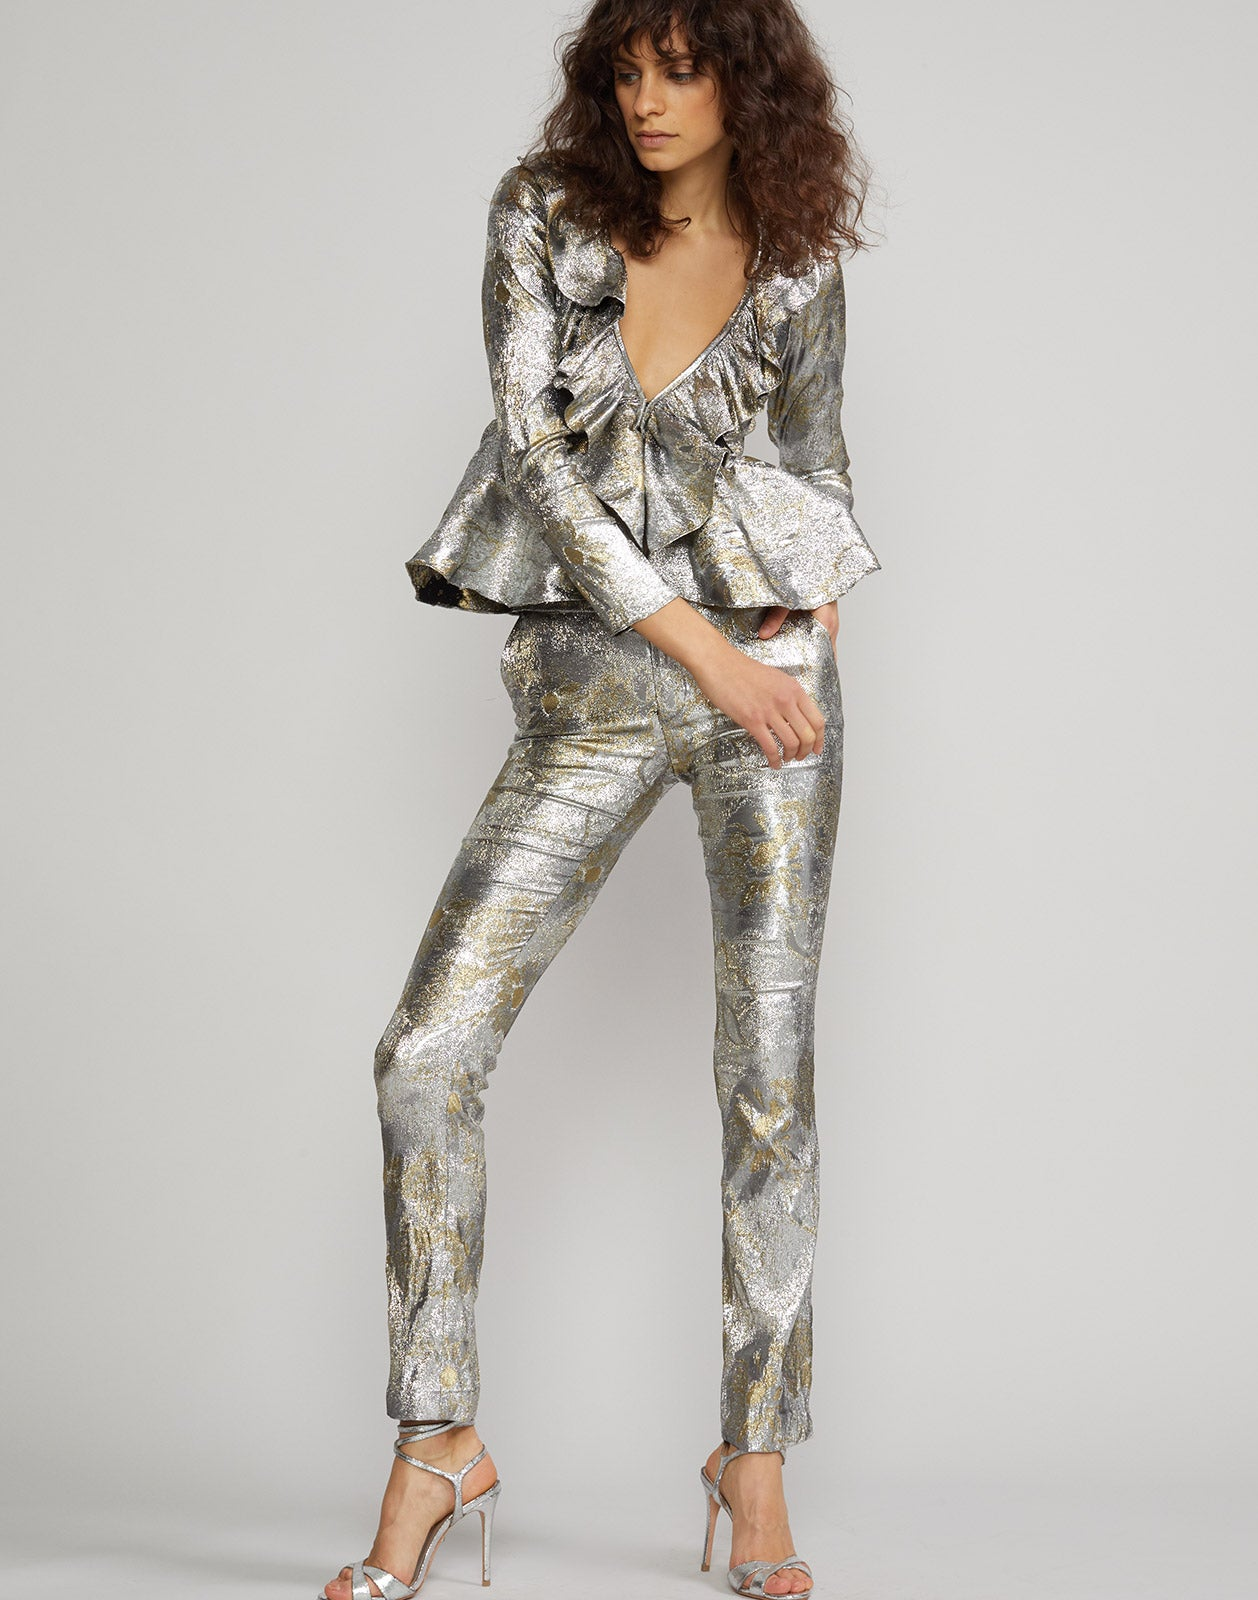 Front view of the Gold Coast metallic brocade pant and top.